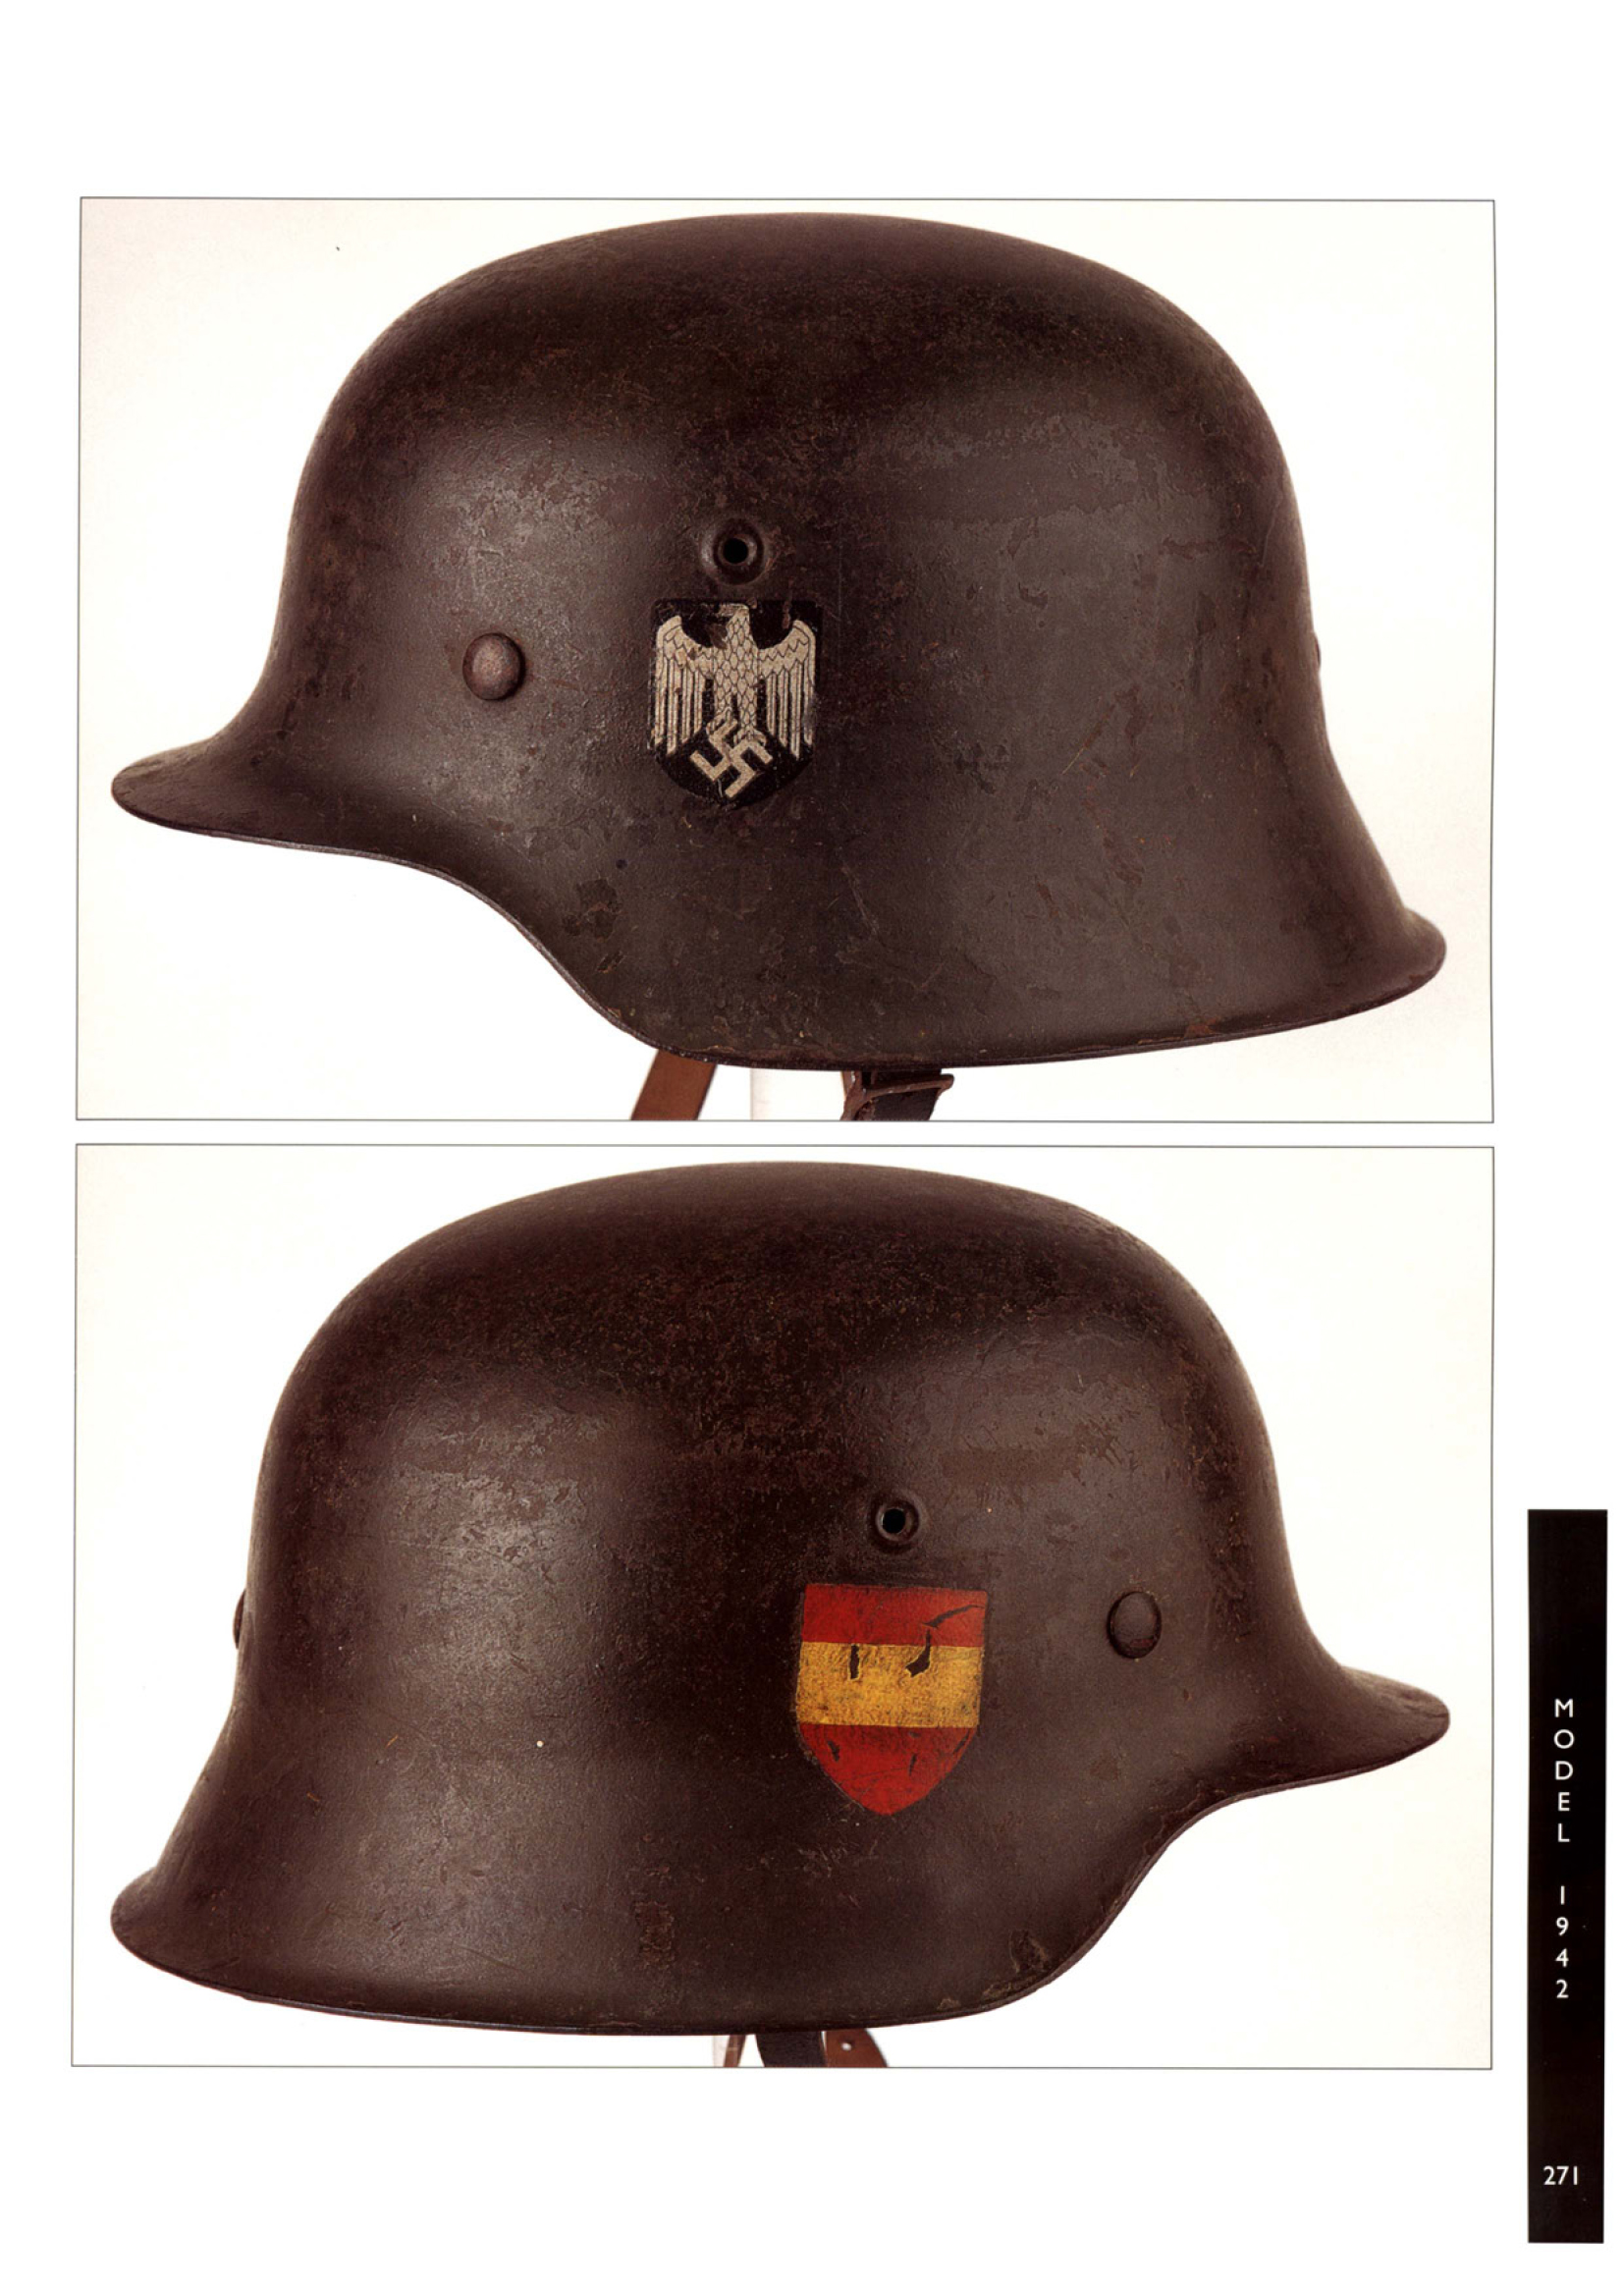 German Helmets of the Second World War-271.jpg